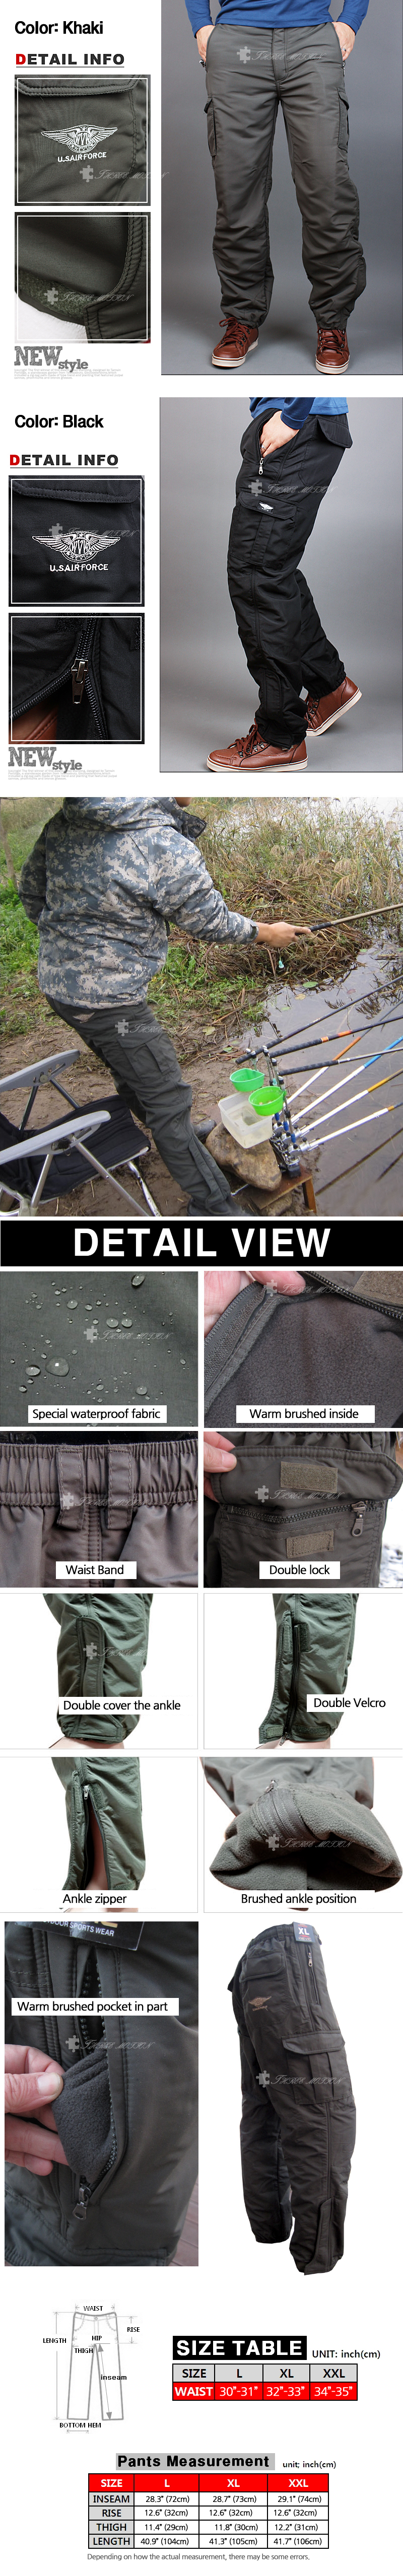 Jual Winter Mens Cargo Pants Fishing Waterproof Lined Thermal Work Rod Belt Tempat Handphone Comfort Waist With Elastic Band And Loop Durable Fabric Construction Over Sized Pockets